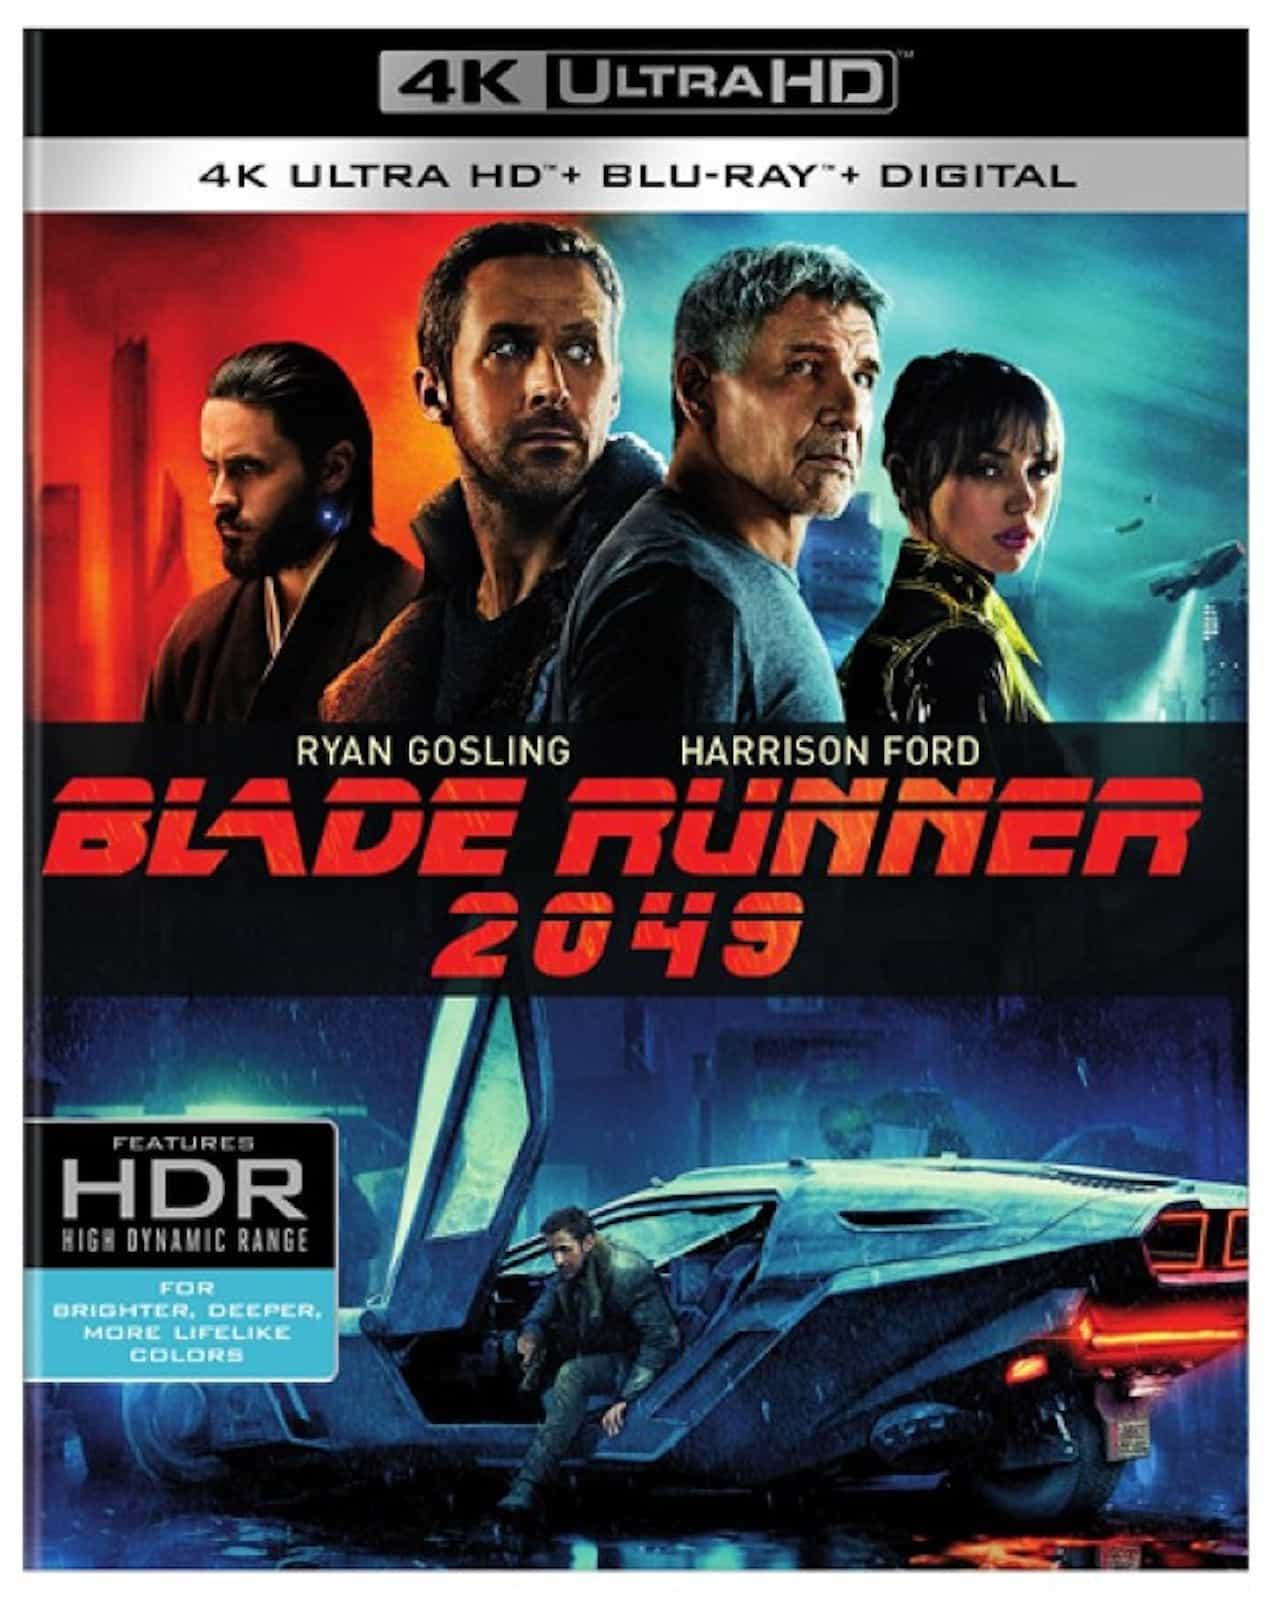 Blade Runner 2049 Cinematographe